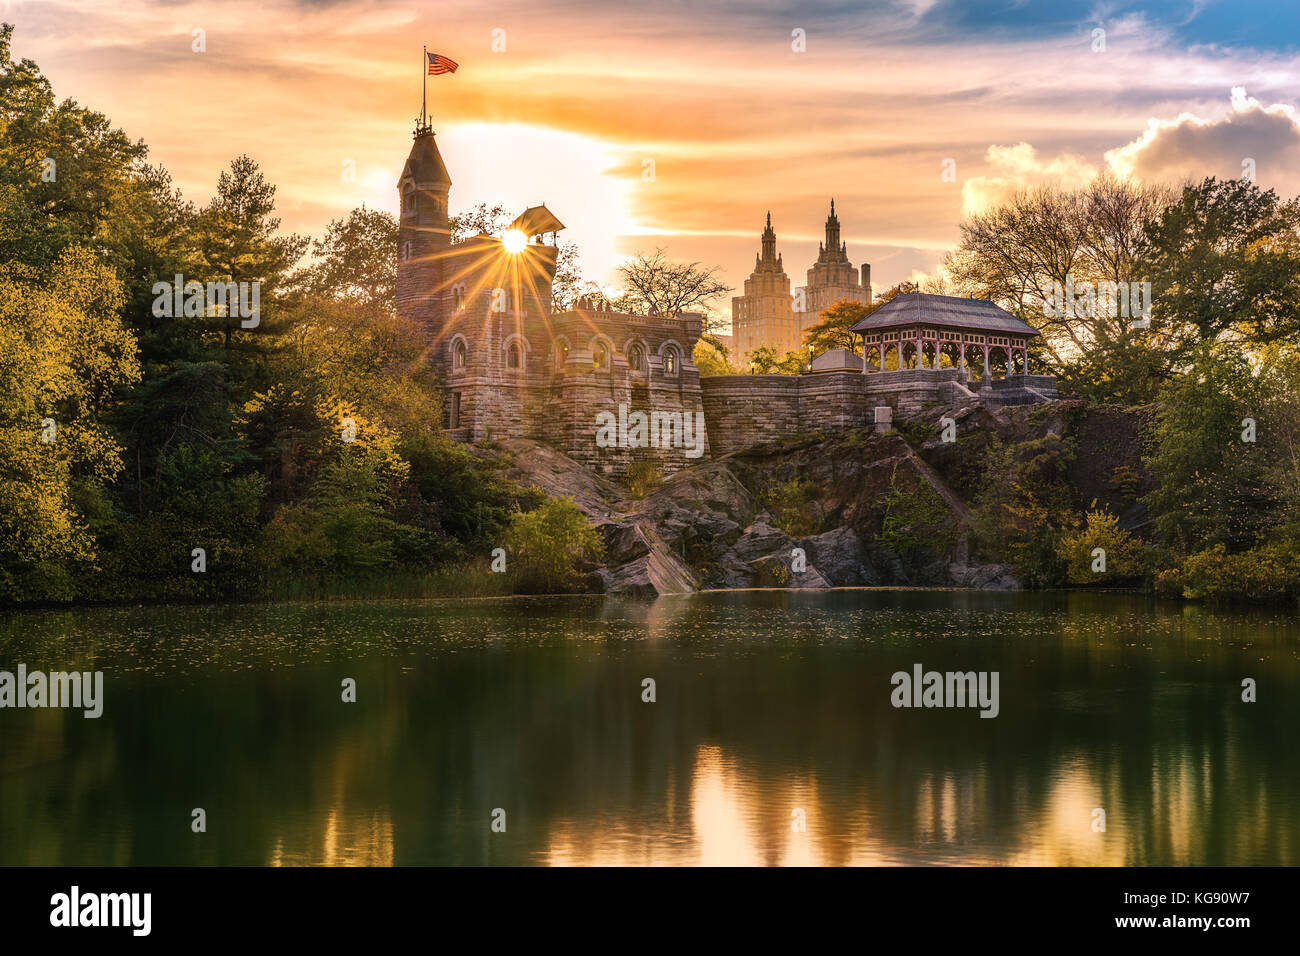 Belvedere Castle at sunset. Belvedere Castle is a folly built in the late 19th century in Central Park, Manhattan, - Stock Image